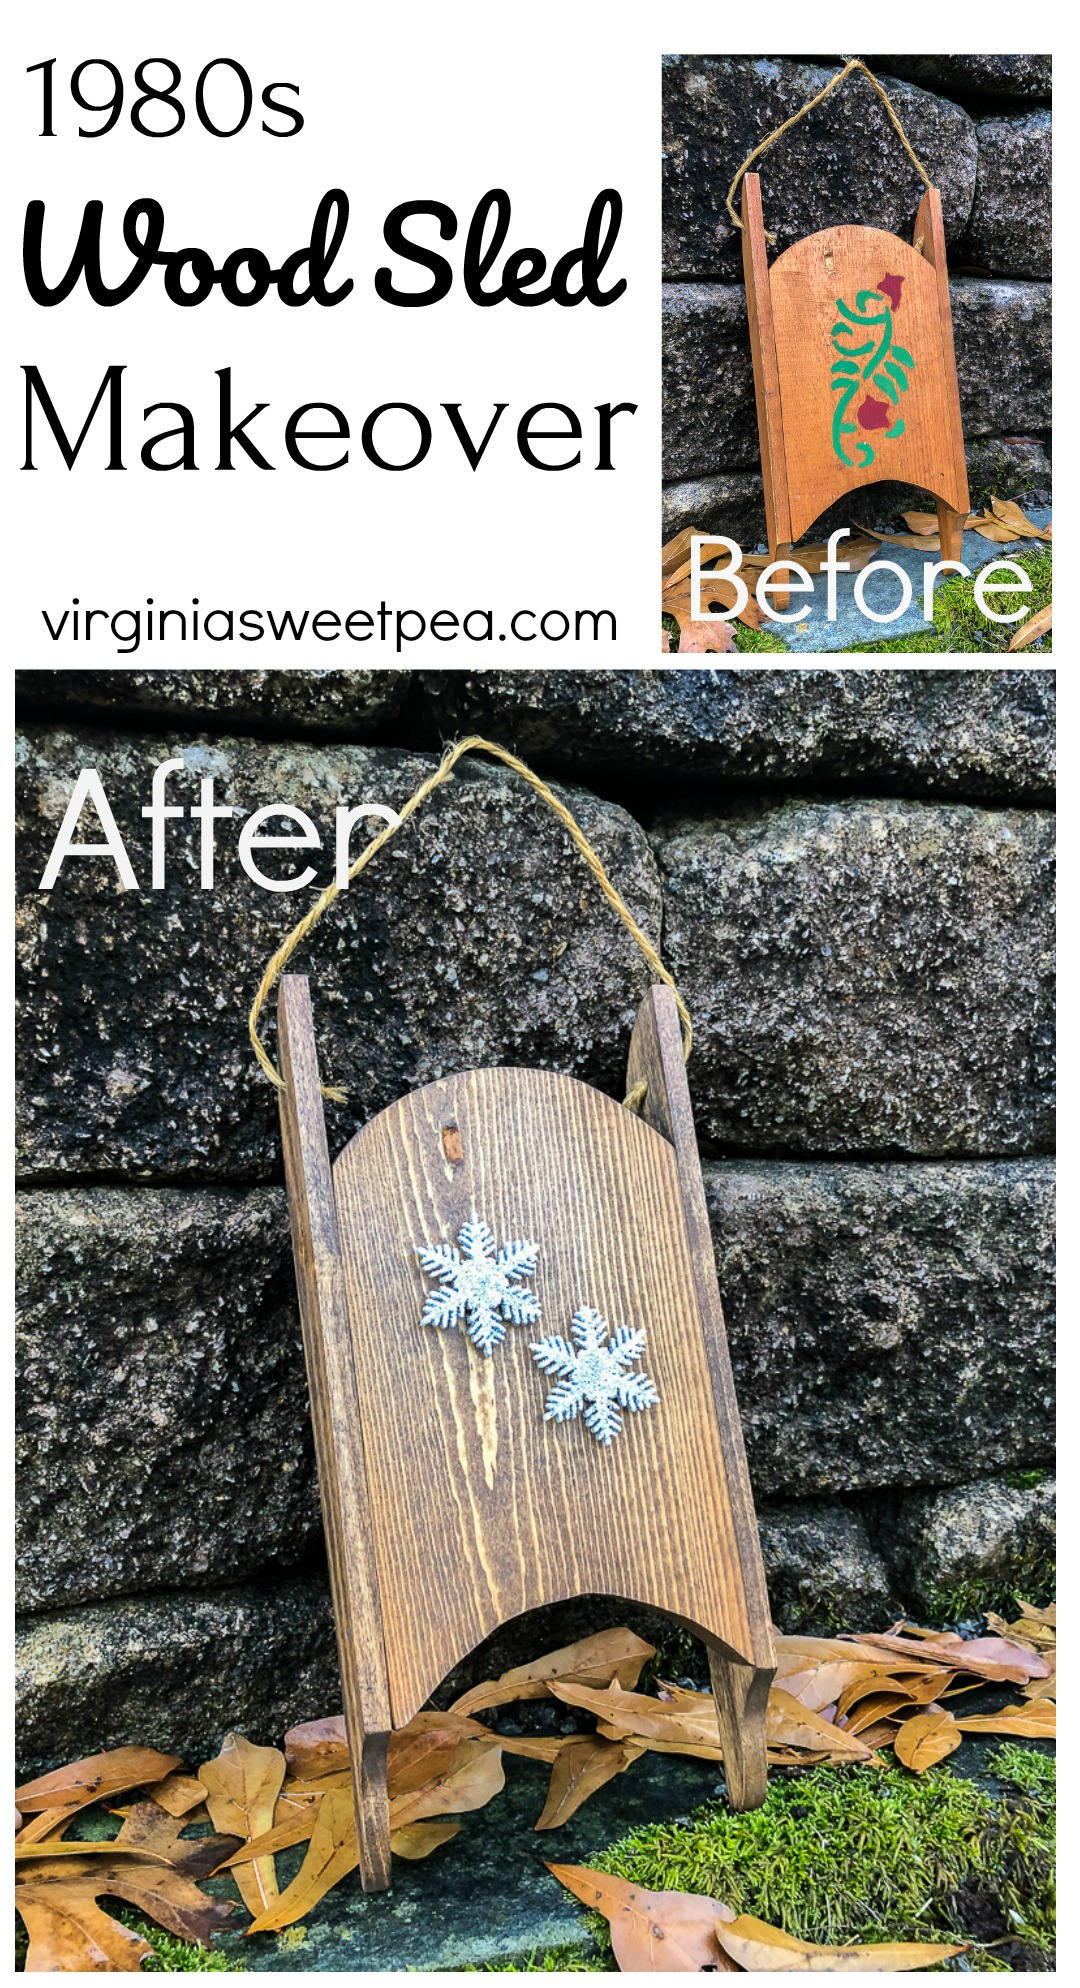 Wood Sled Makeover - A wood sled from the 1980s with a stencil gets a makeover for 2020.  via @spaula